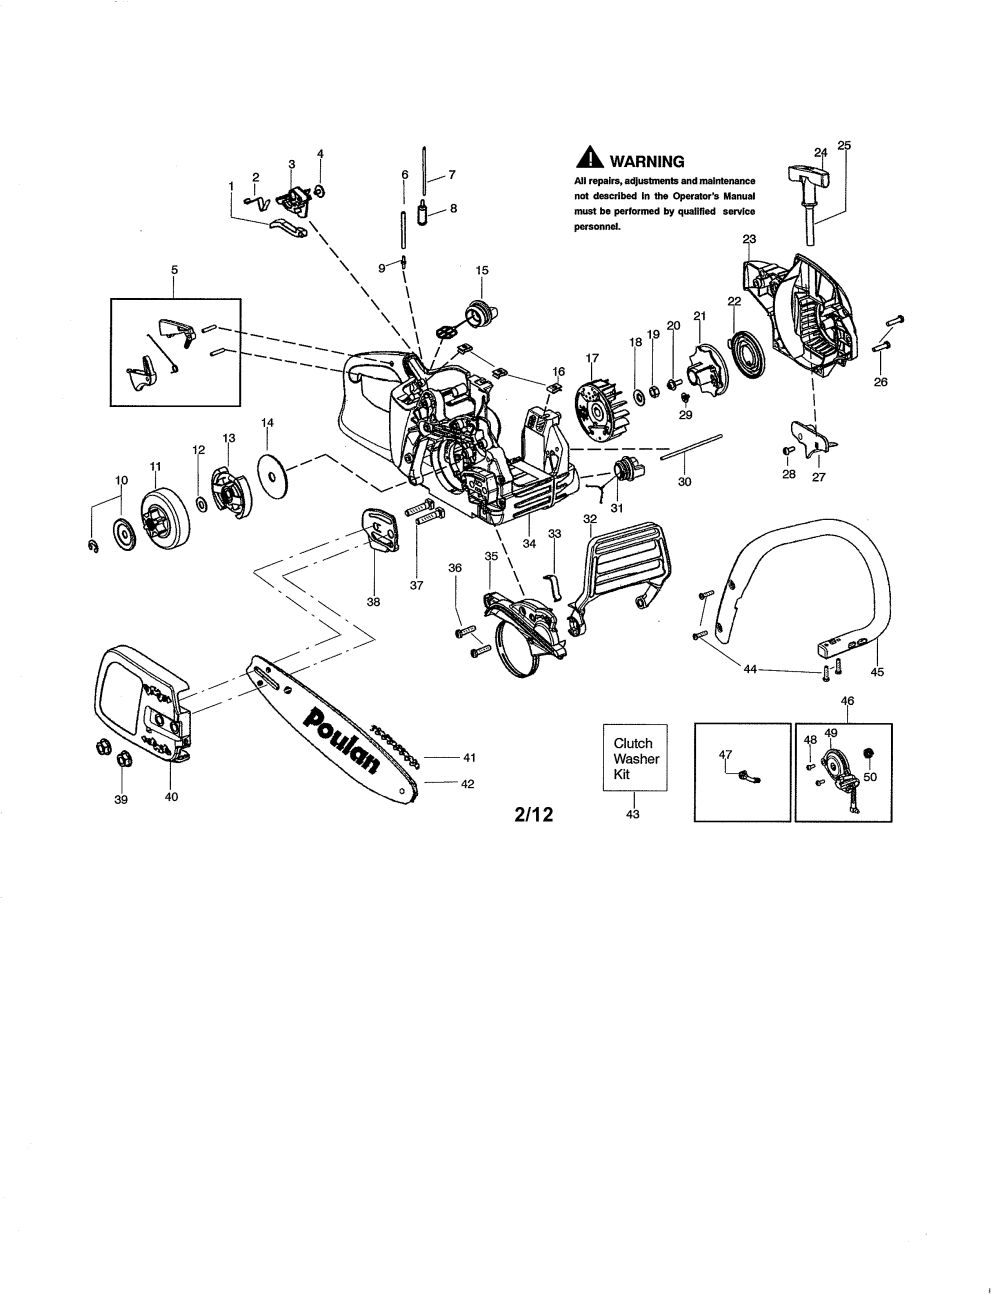 medium resolution of looking for poulan model p3816 type 2 gas chainsaw repair handle chain and guide bar diagram and parts list for poulan chainsaw